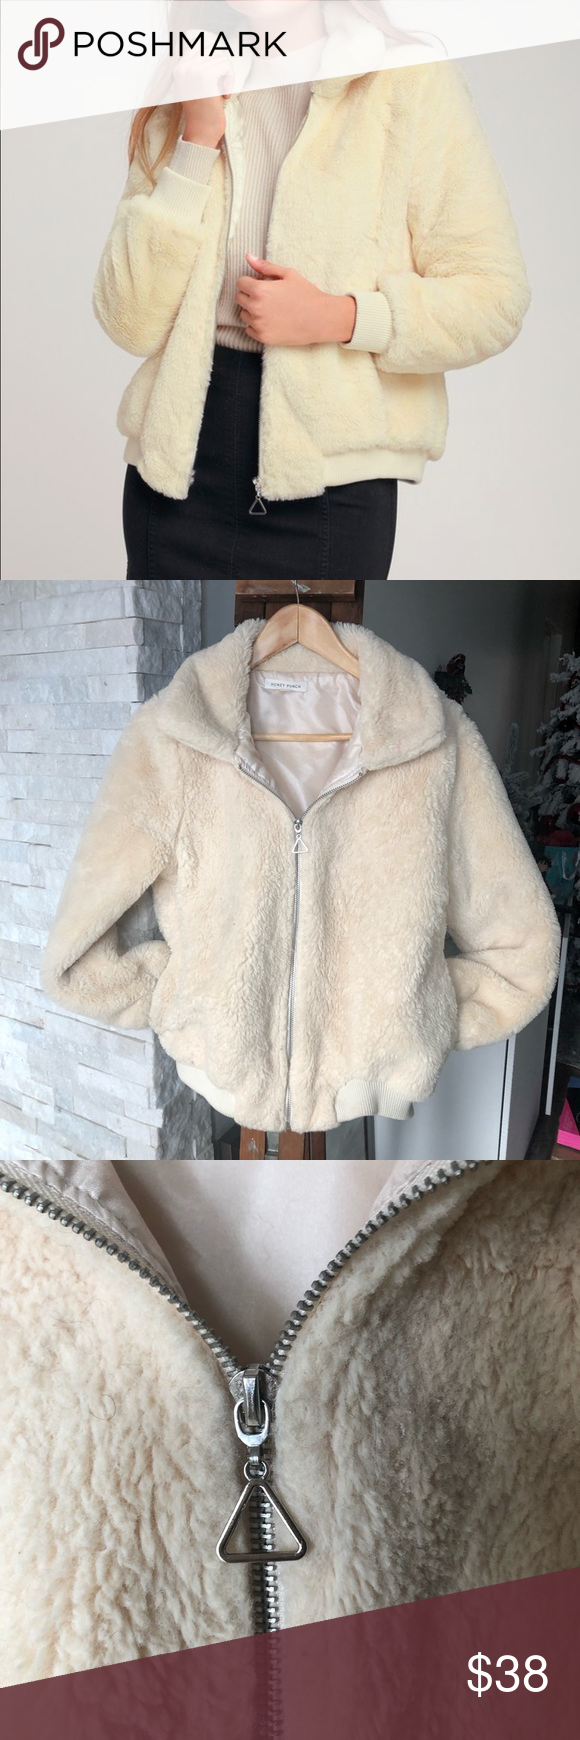 Fuzzy Bomber Jacket Add A Little Drama To Your Look With The Olly Cream Faux Fur Bomber Jacket Extra Luxe Clothes Design Faux Fur Bomber Jacket Bomber Jacket [ 1740 x 580 Pixel ]